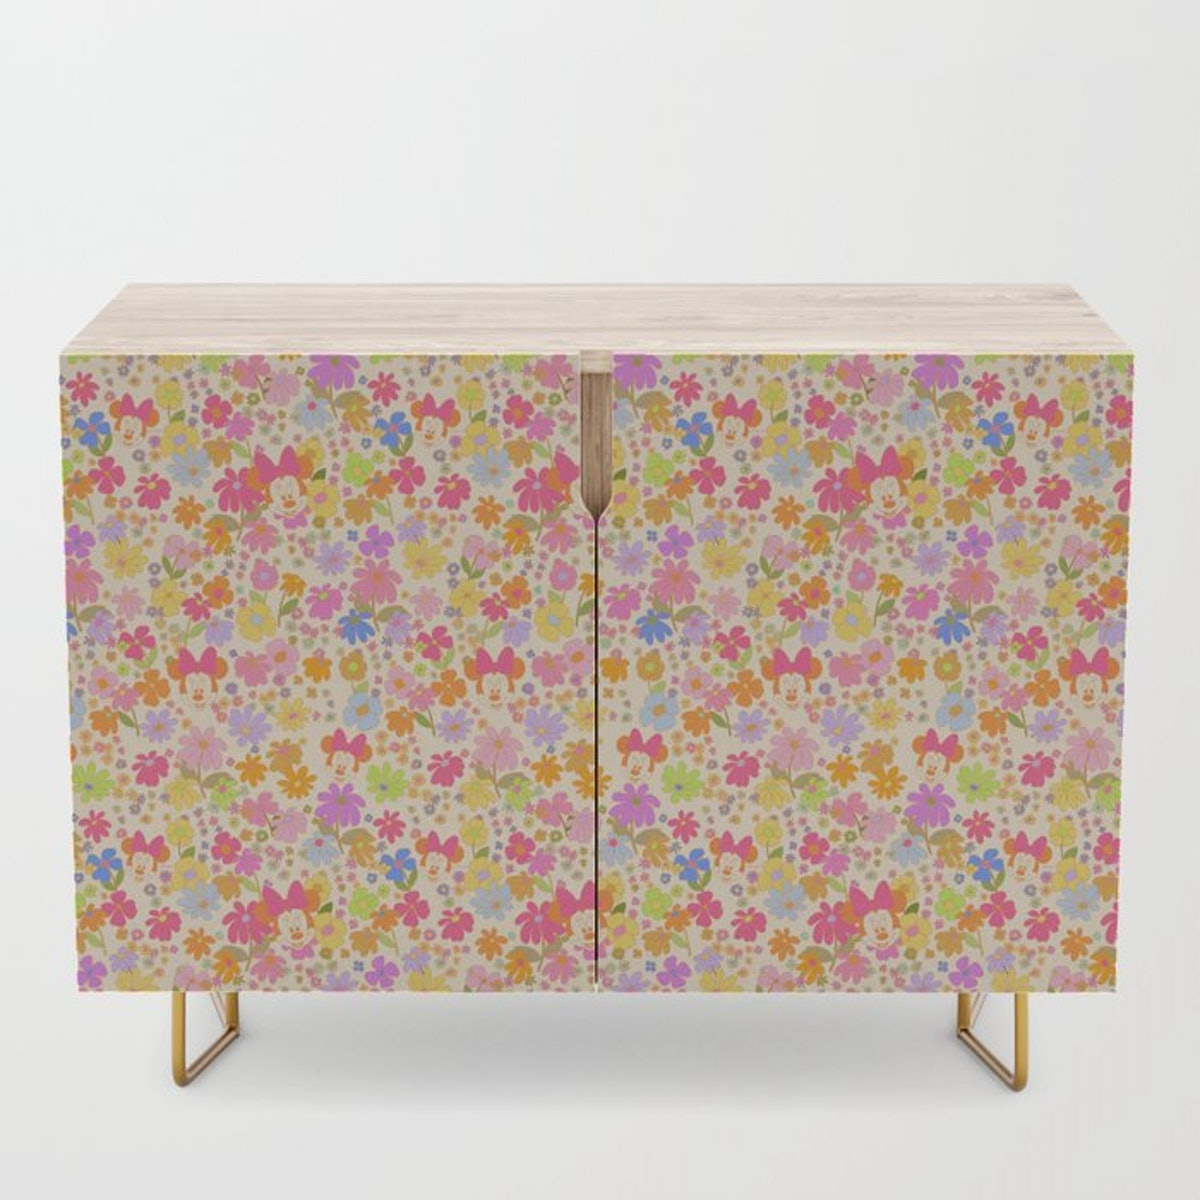 This Society6 x Disney Minnie Mouse Collection credenza has hidden Minnie Mouses on it.